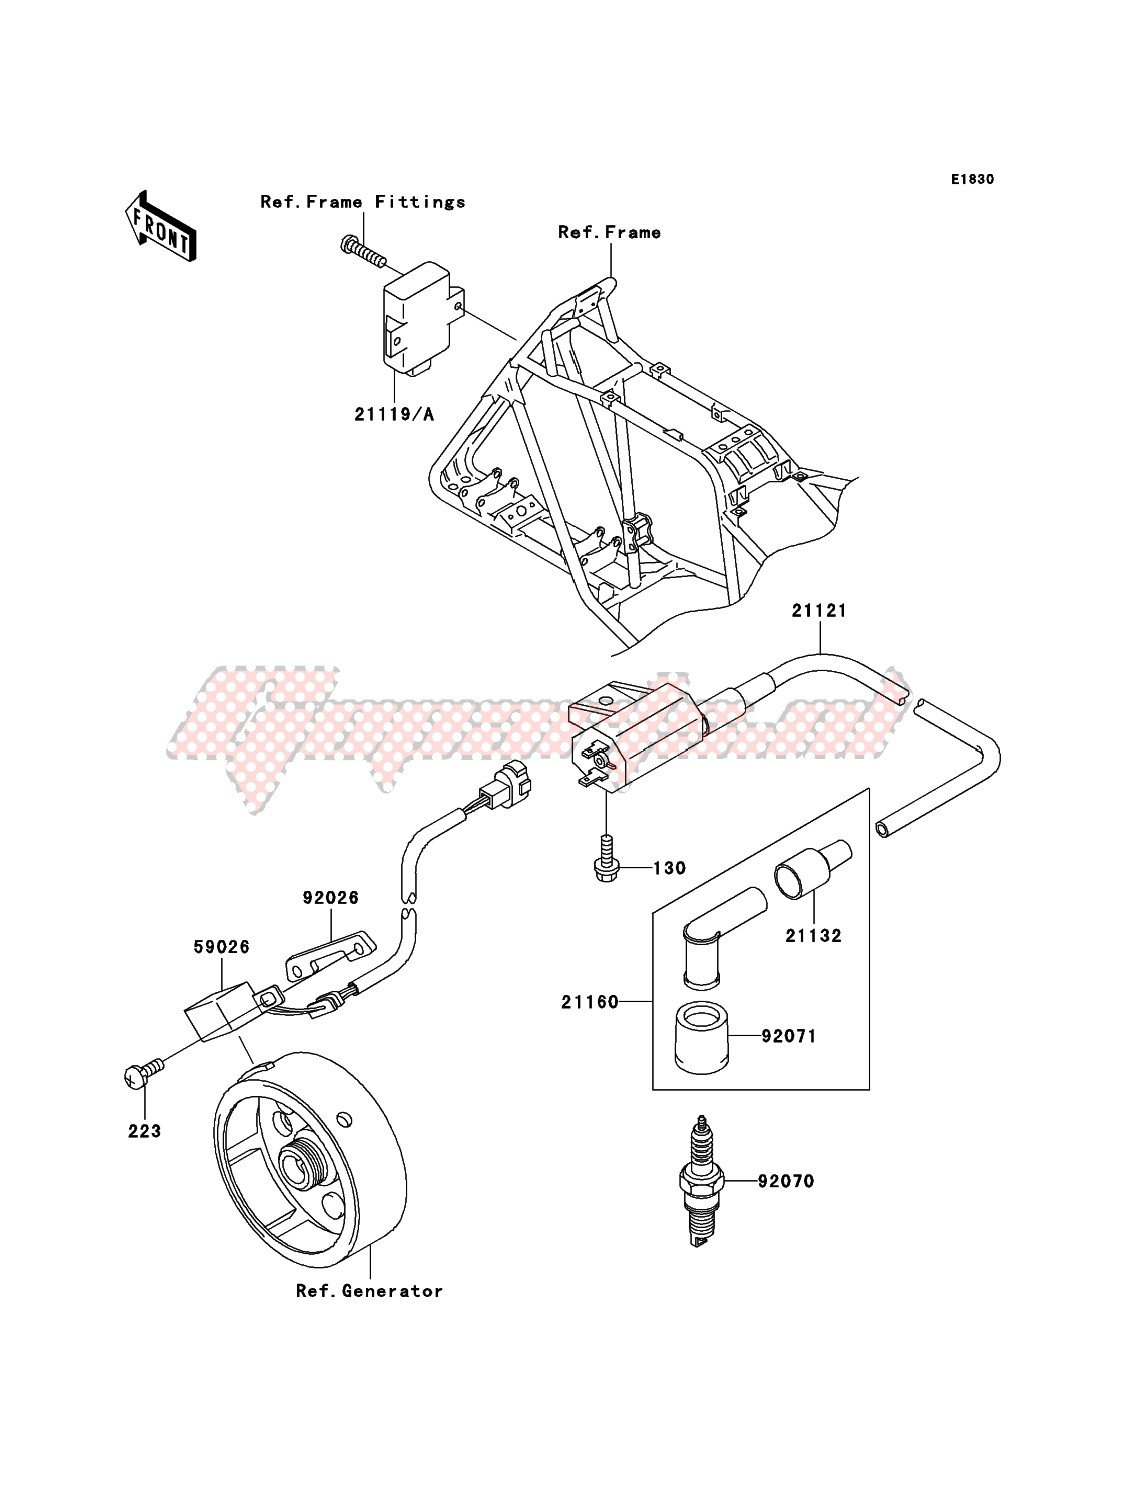 Engine-Ignition System